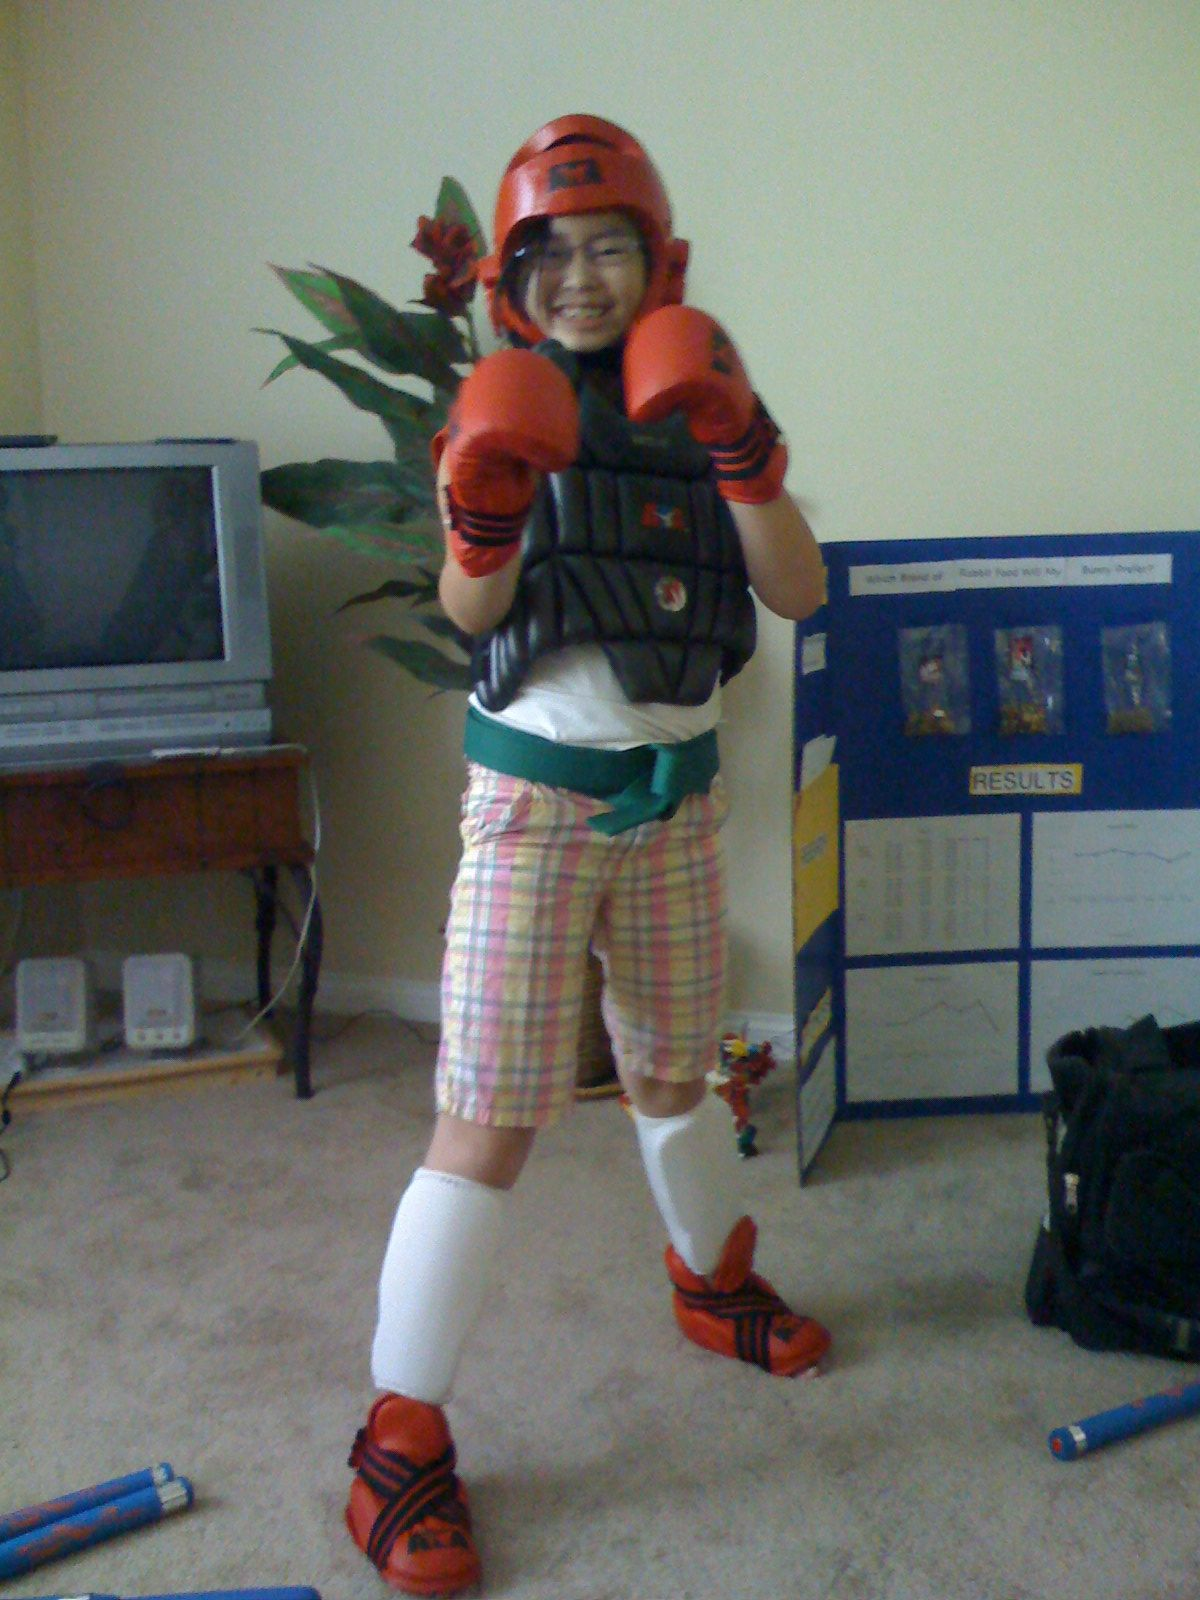 Whipped out the Taekwondo gear for a little exercise